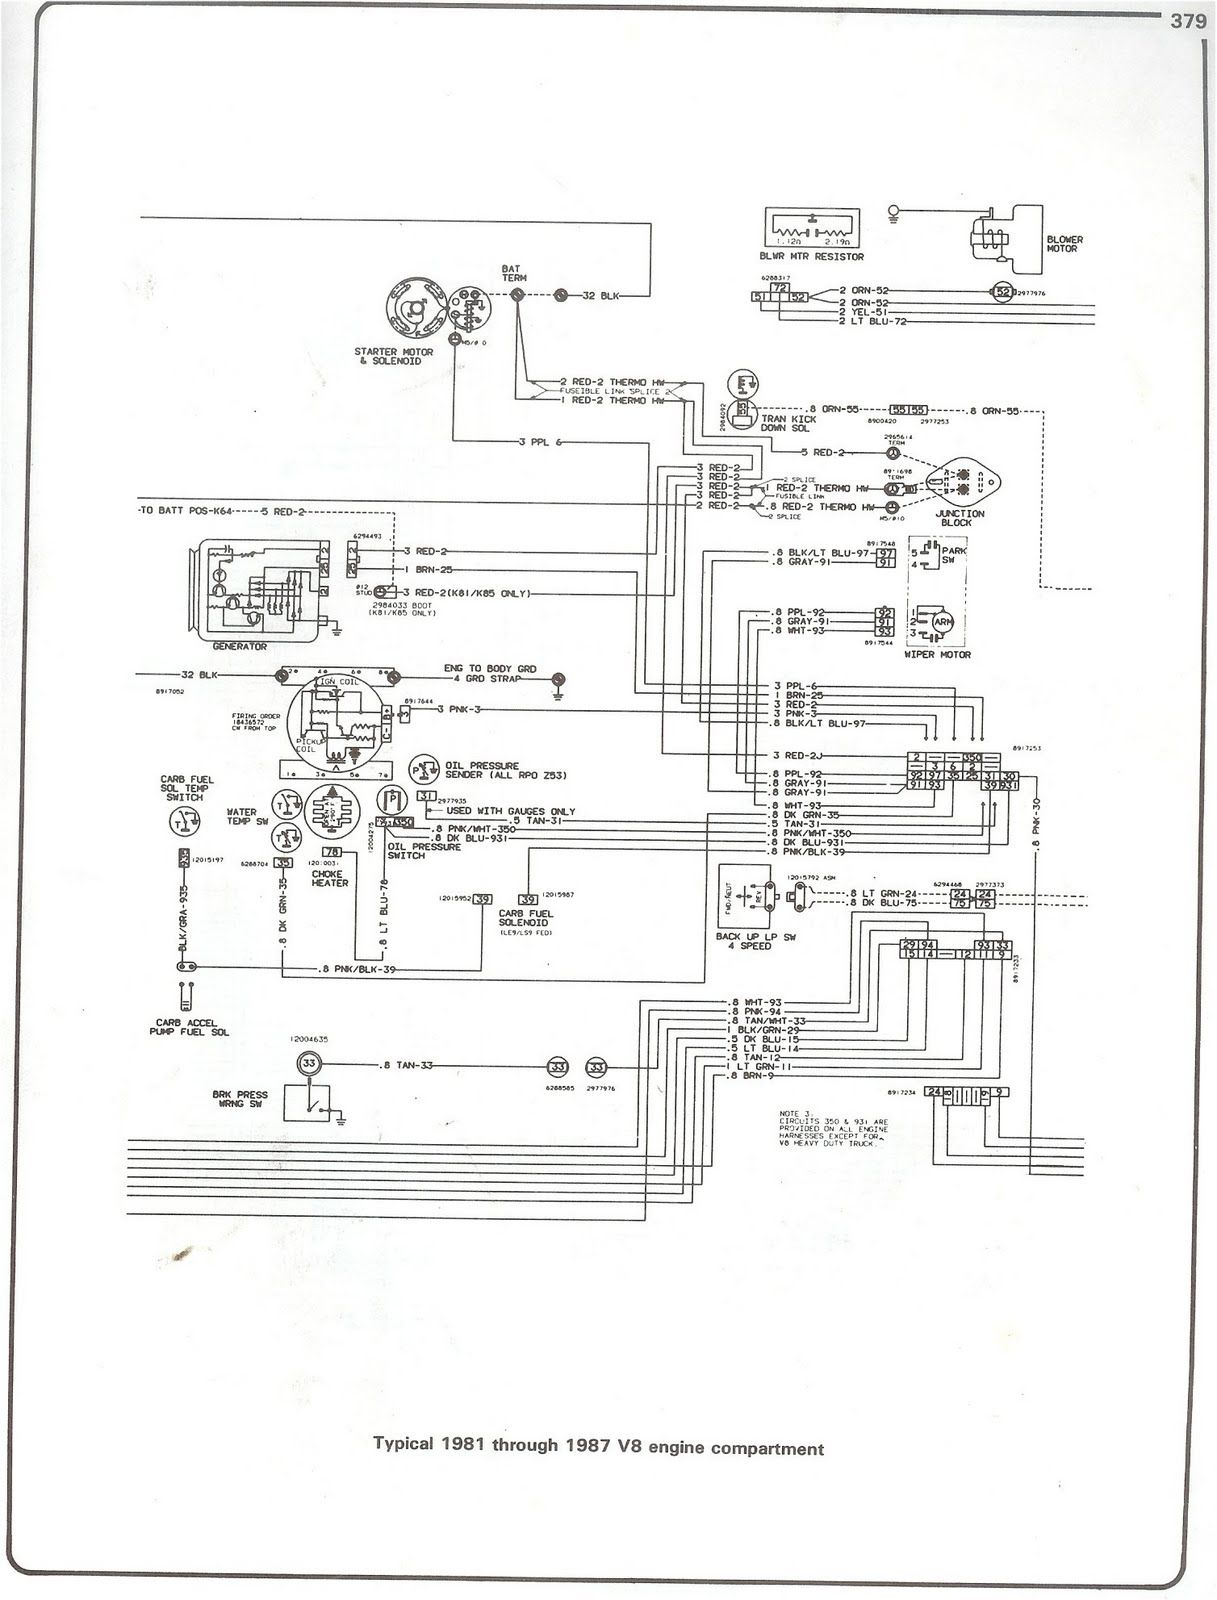 1981 Gmc Jimmy Wiring Diagram | Wiring Diagram  Chevy Truck Wiring Diagram on western joystick controller wiring diagram, fuel tank sending unit wiring diagram, 1981 chevy truck speedometer, 1985 chevy truck wiring diagram, 1981 chevy truck fan belt, 1981 chevy truck tires, 1981 chevy truck door, 1987 chevy 1500 wiring diagram, chevy truck heater wiring diagram, chevy engine wiring diagram, chevy truck ignition diagram, 1981 chevy truck exhaust, 1978 chevy truck wiring diagram, 1980 chevy truck wiring diagram, 1979 chevy truck wiring diagram, 96 chevy truck wiring diagram, chevrolet wiring diagram, 1981 chevy truck carburetor, 1969 chevy truck wiring diagram, 85 chevy truck wiring diagram,